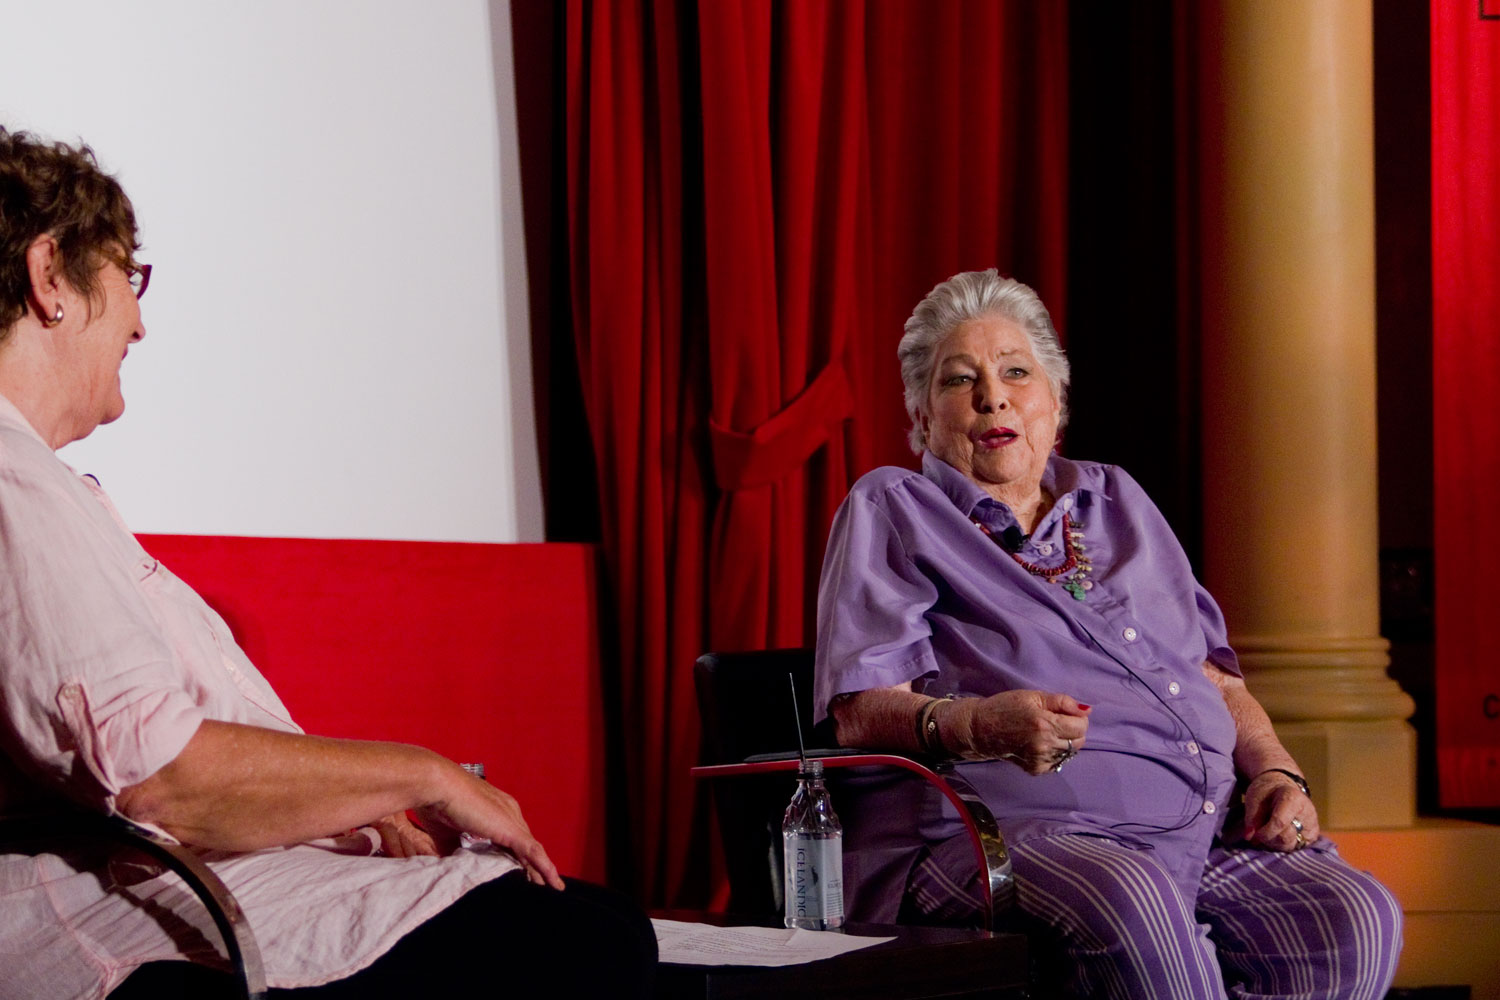 Carrie Beauchamp interviewing editor Anne V. Coates